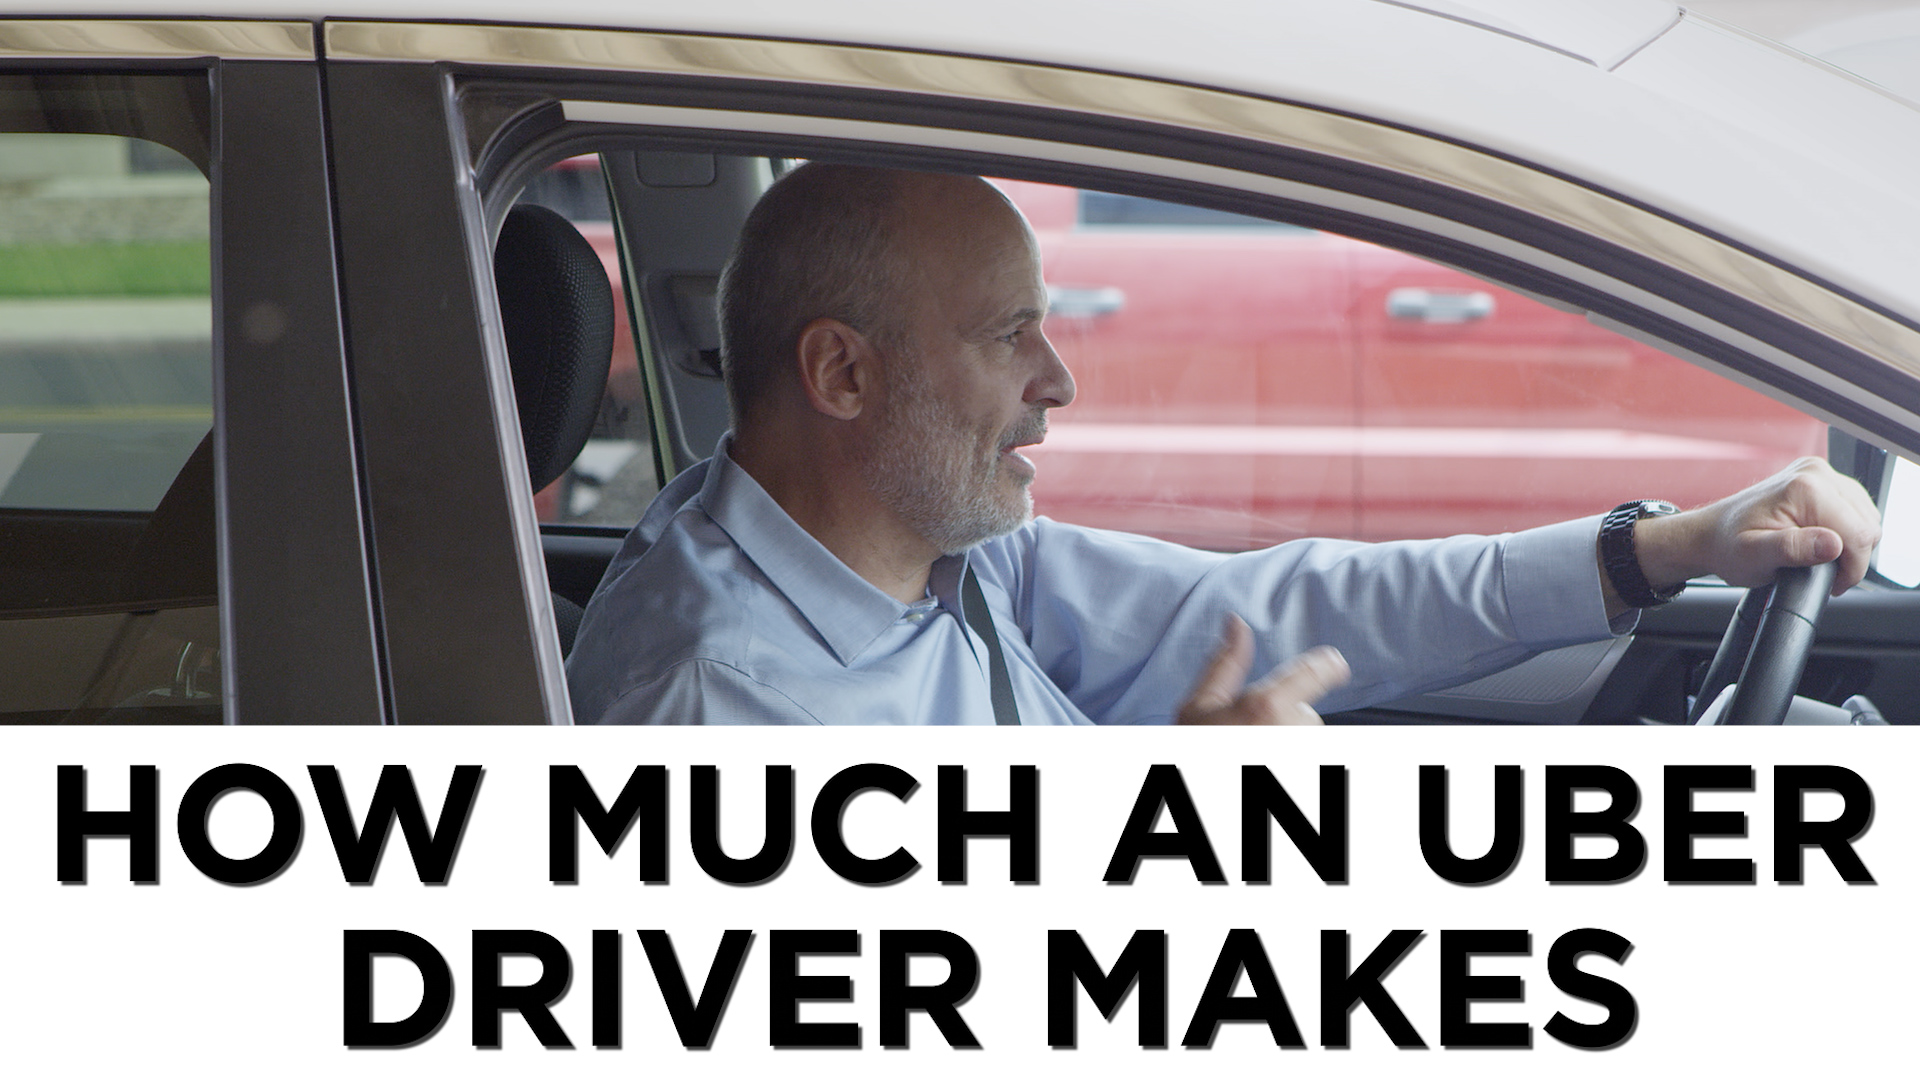 How much an Uber driver makes